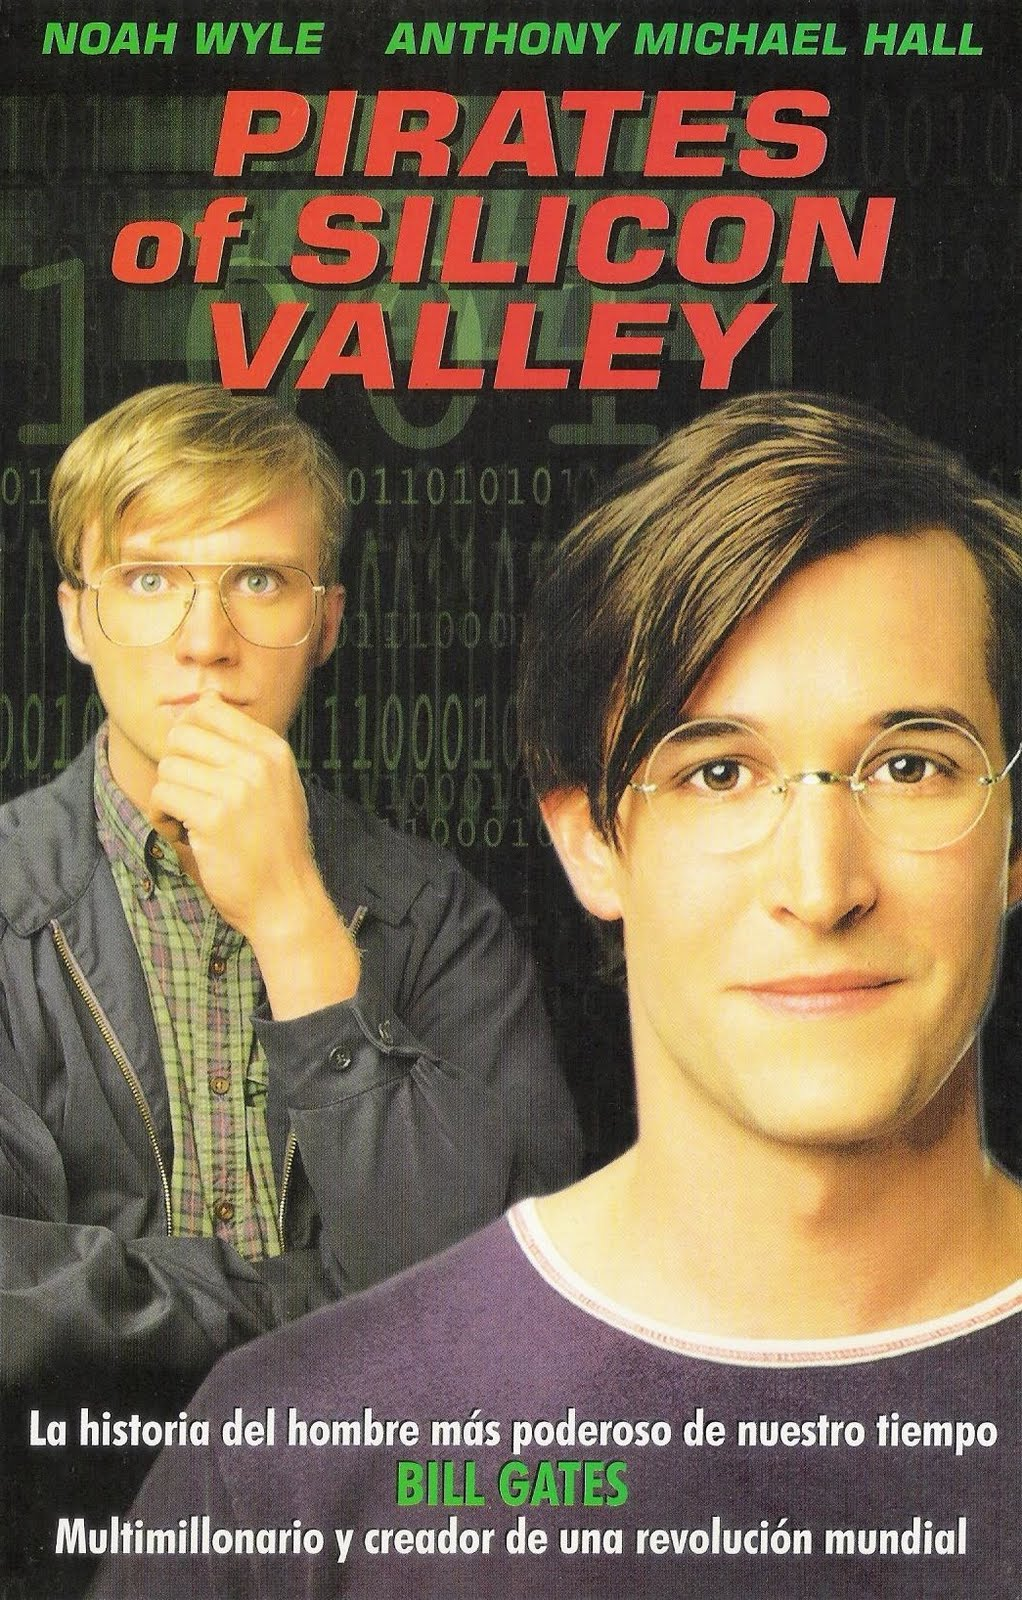 pirates of silicon valley essay the movie pirates of silicon valley essay